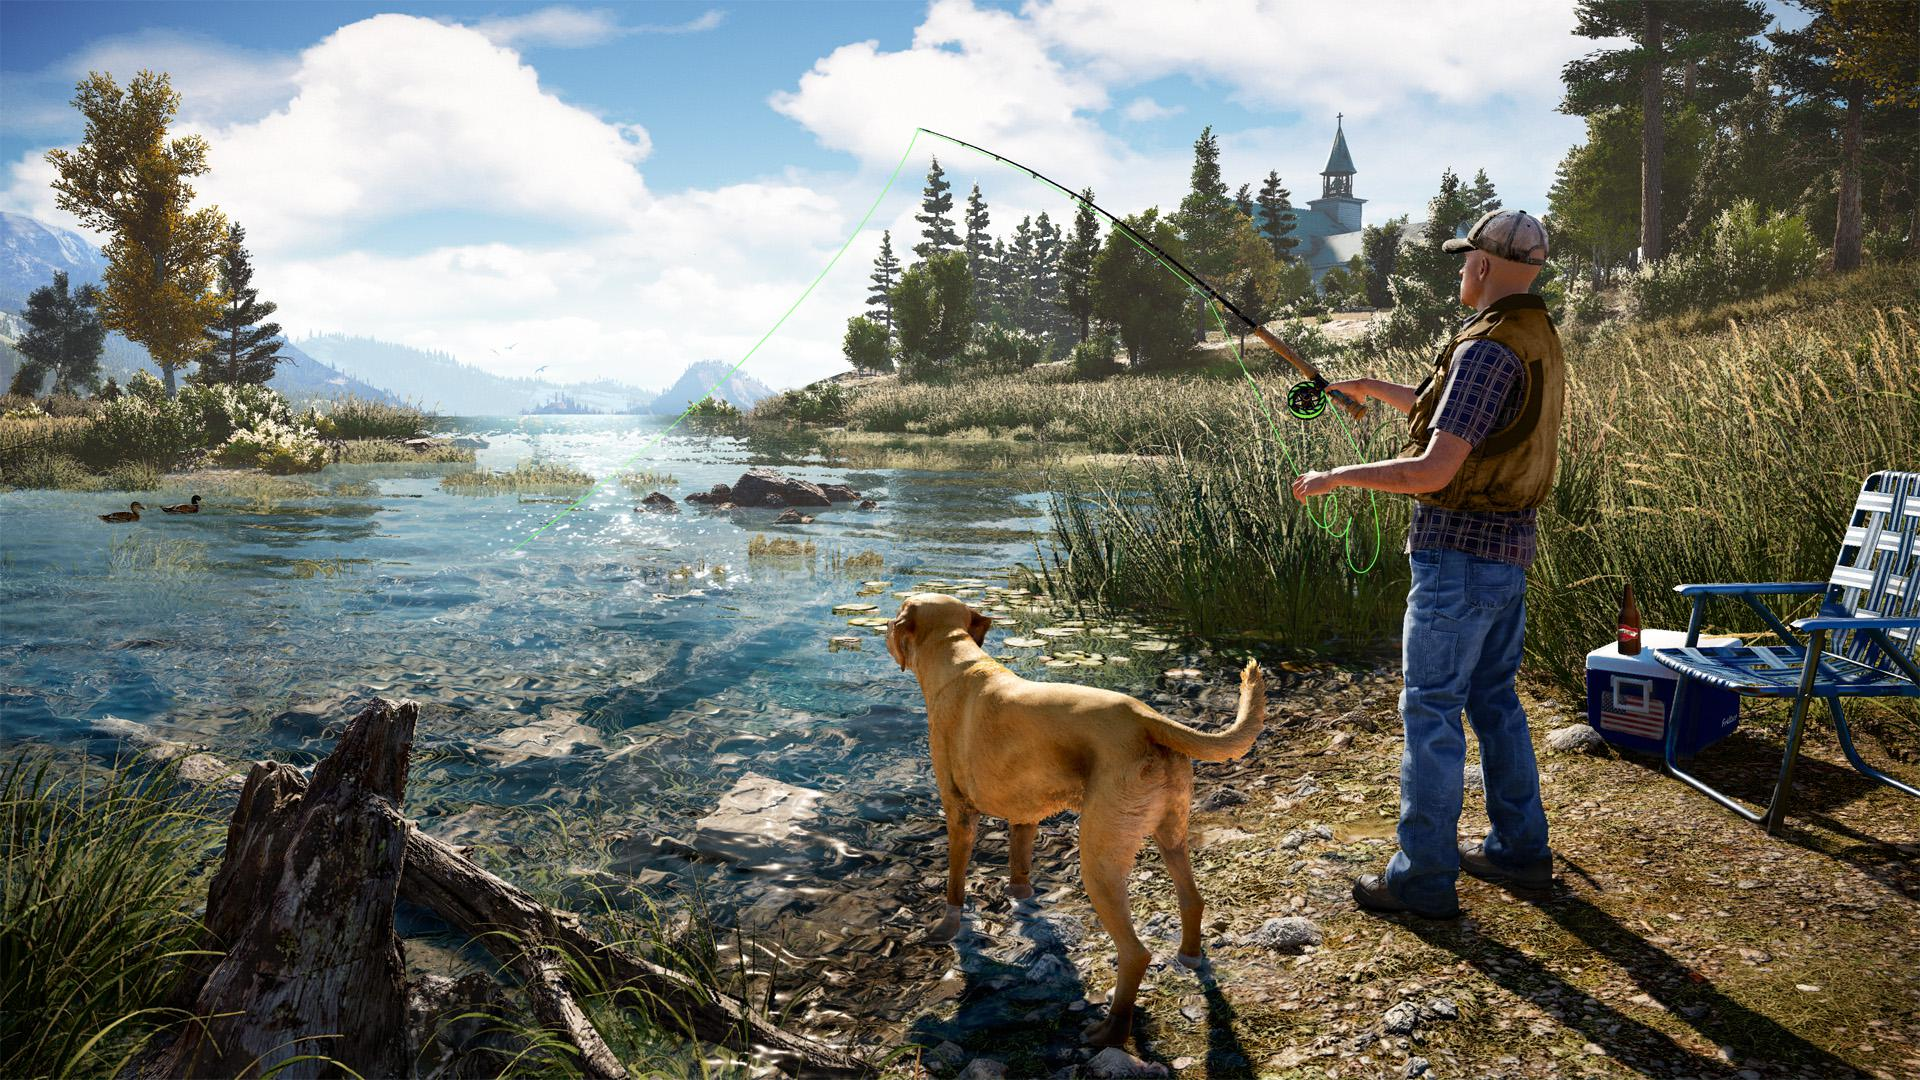 If it all gets too much, you can go fishing in one of Hope County's many lakes